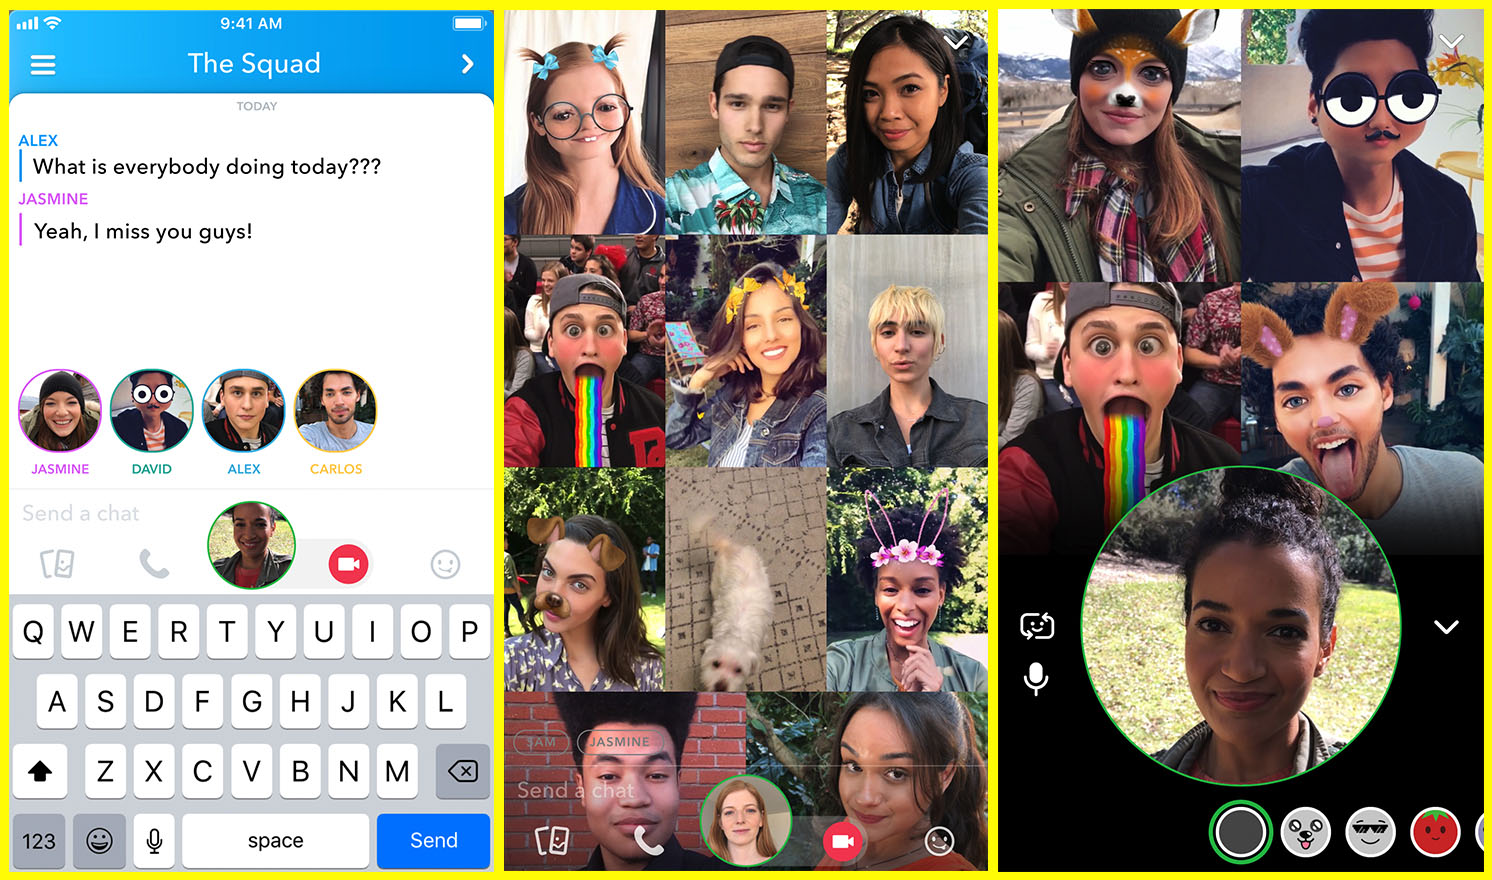 Snapchat Adds Group Video Chat, Allows Tagging